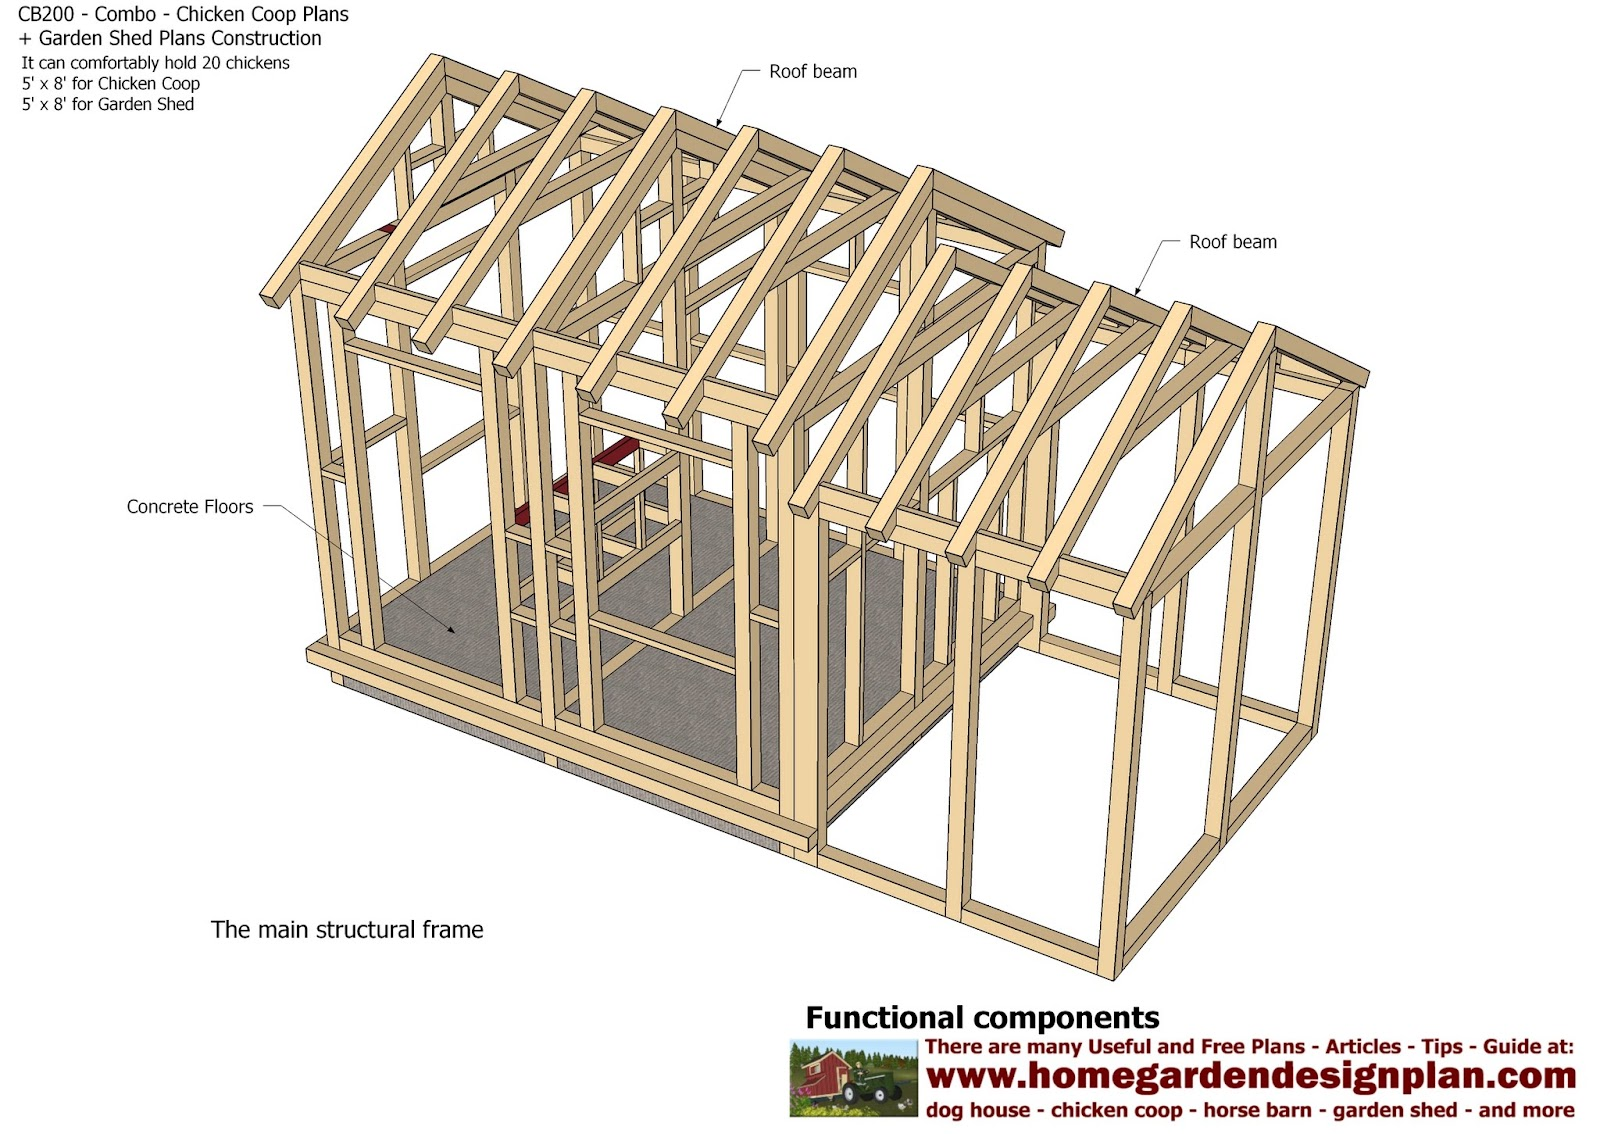 ... Plans+Construction+%2B+Garden+Sheds+Plans+-+Storage+Sheds+Plans